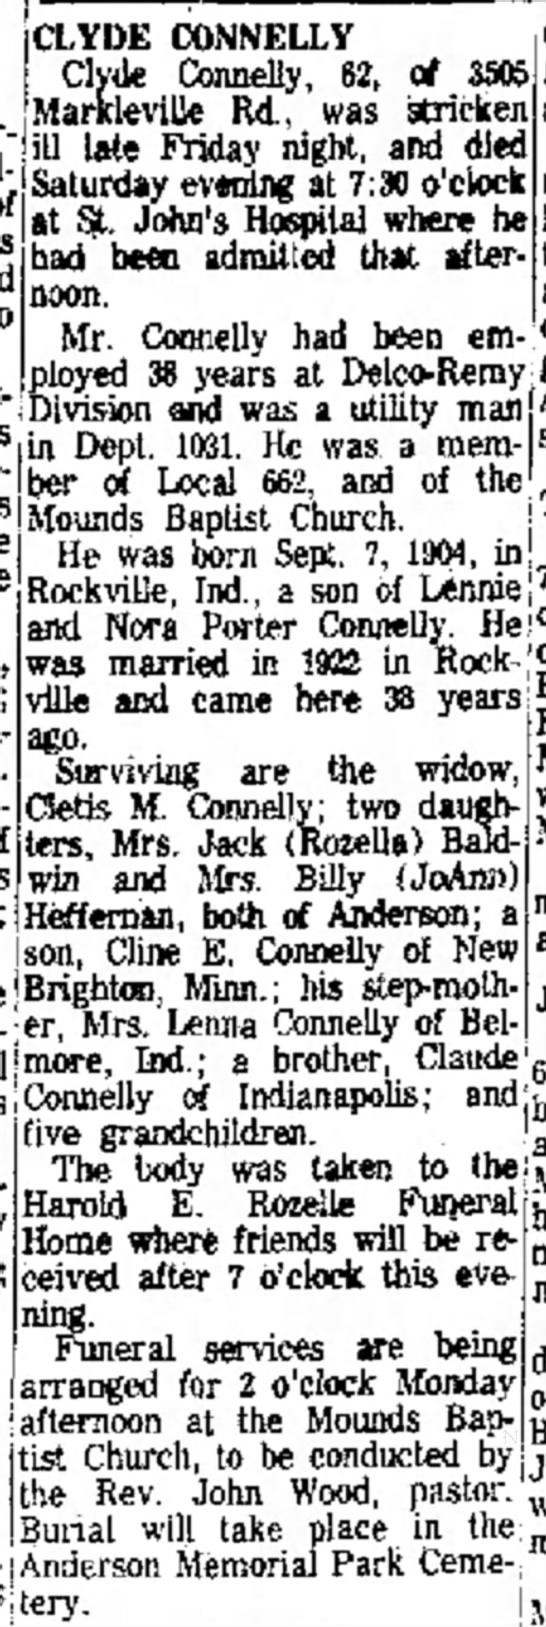 Clyde Connelly Obit 10.2.1966